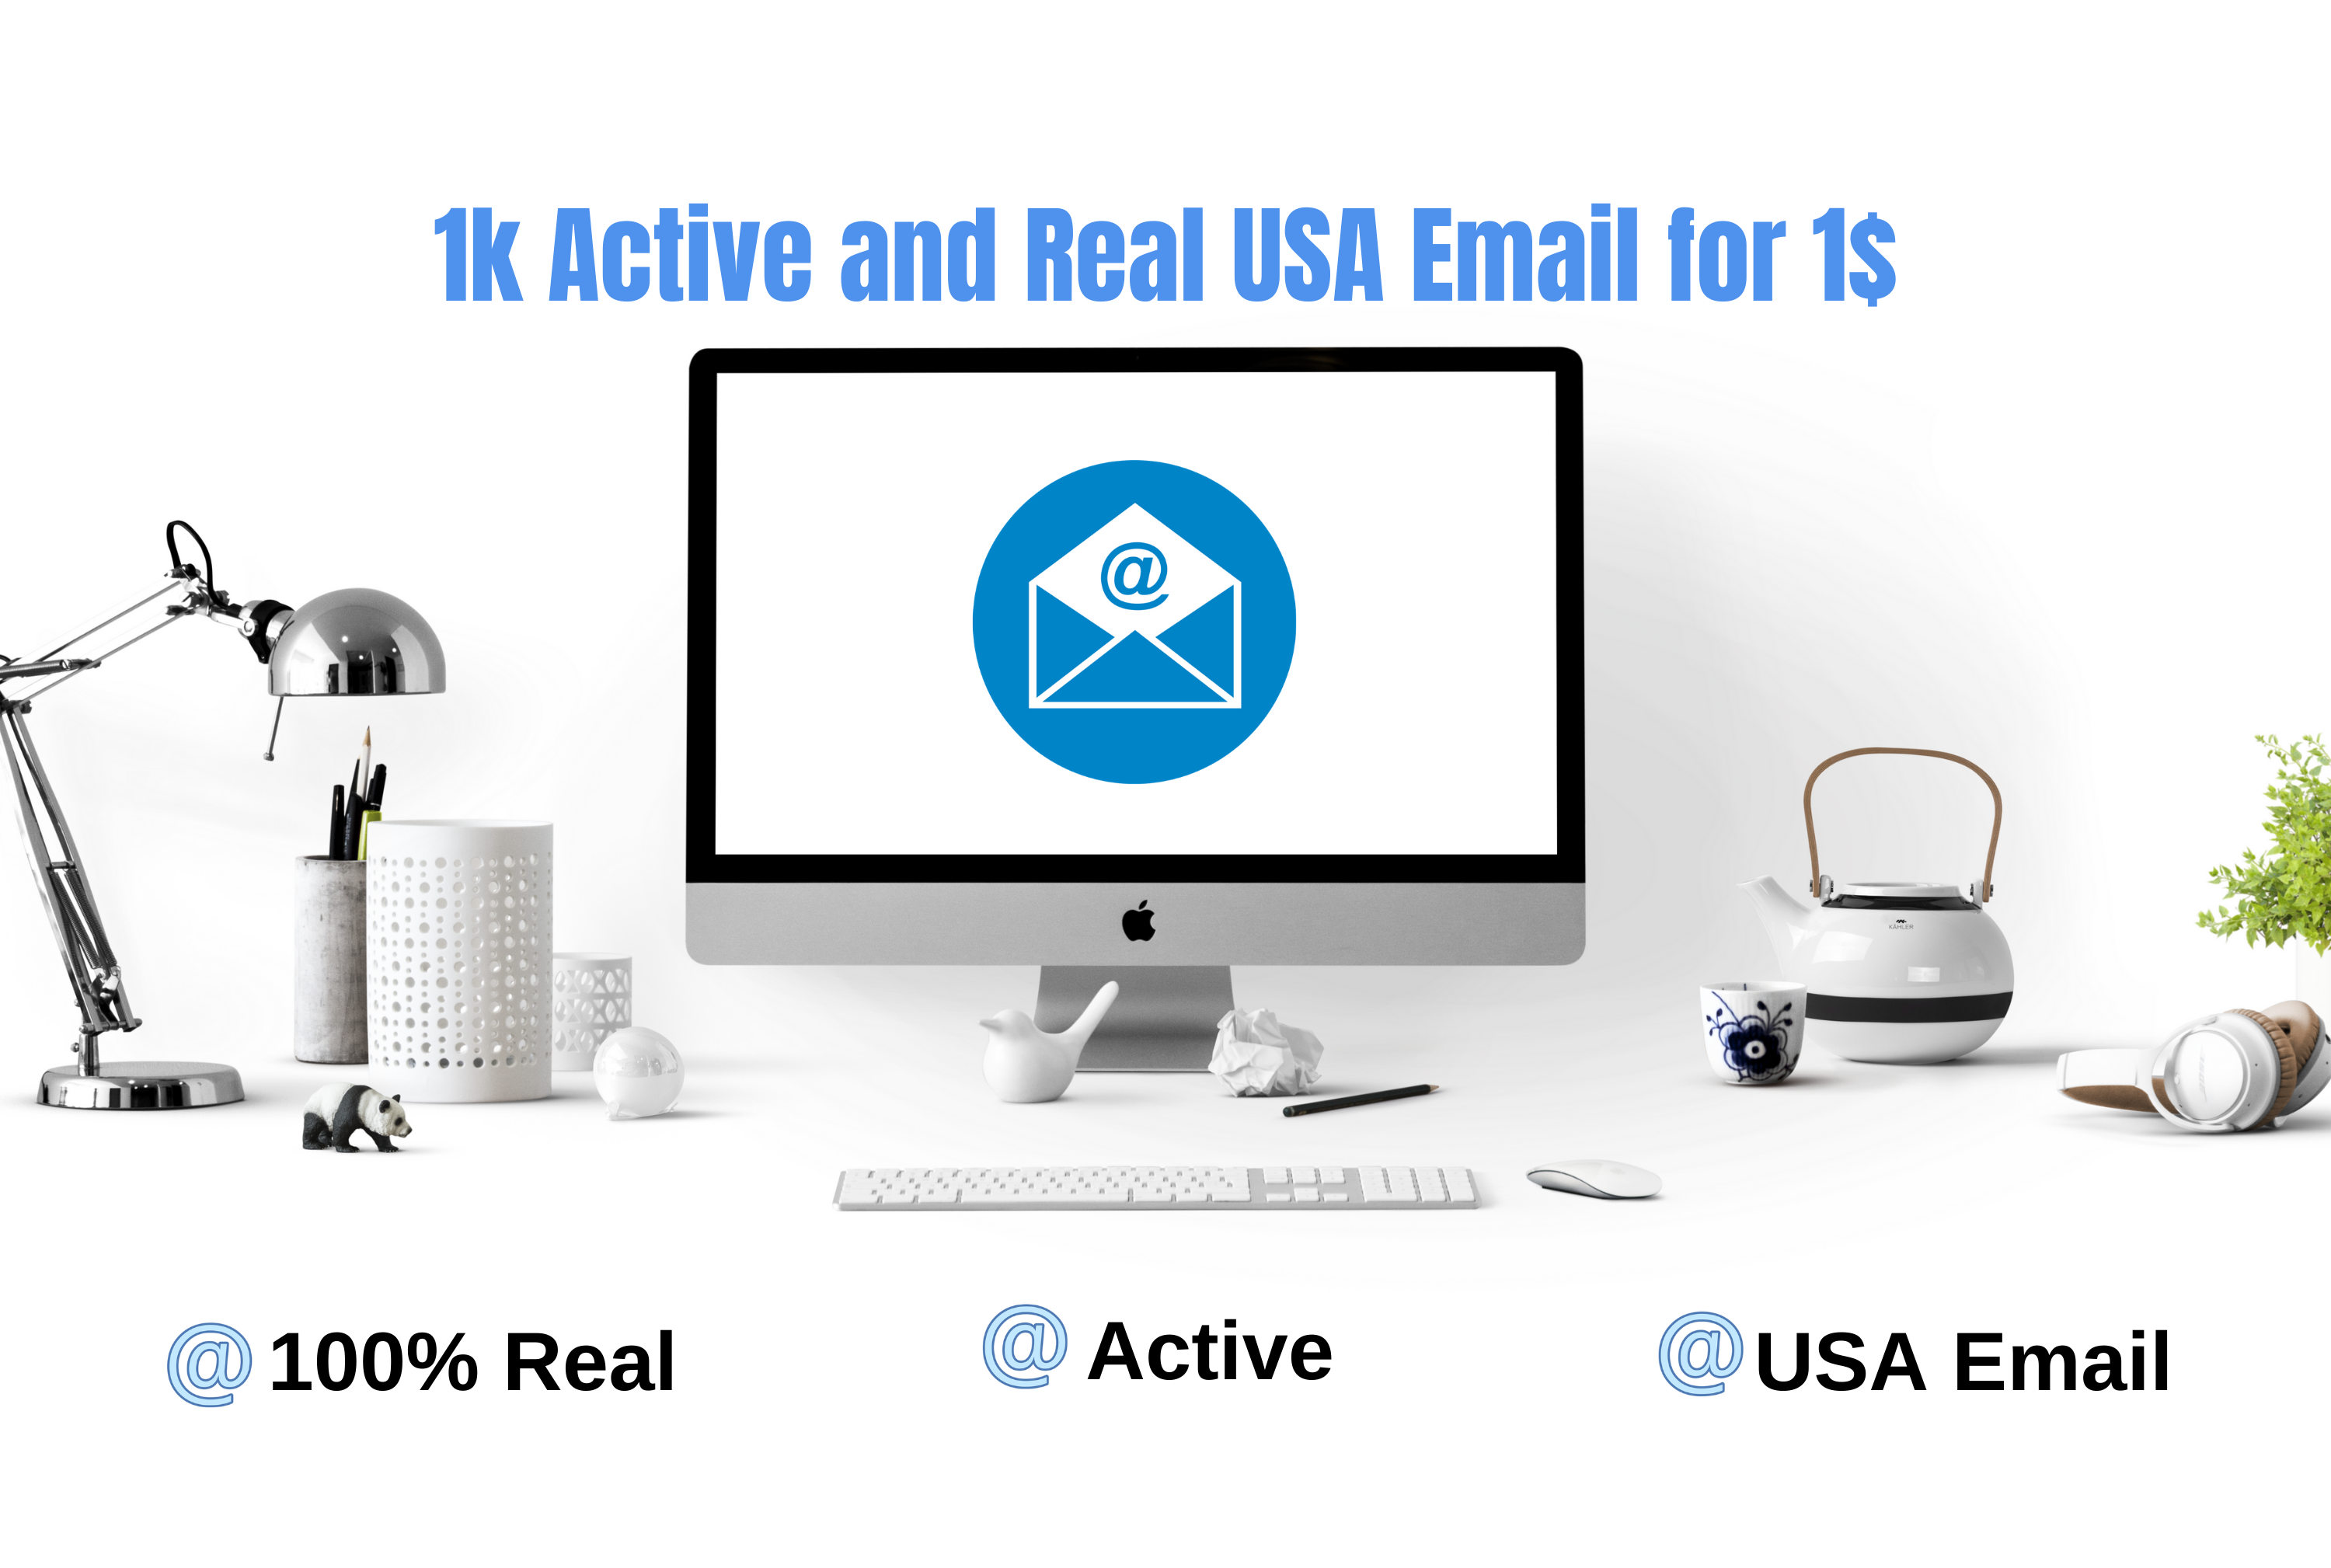 I will provide 1K Active and Real USA Email for you